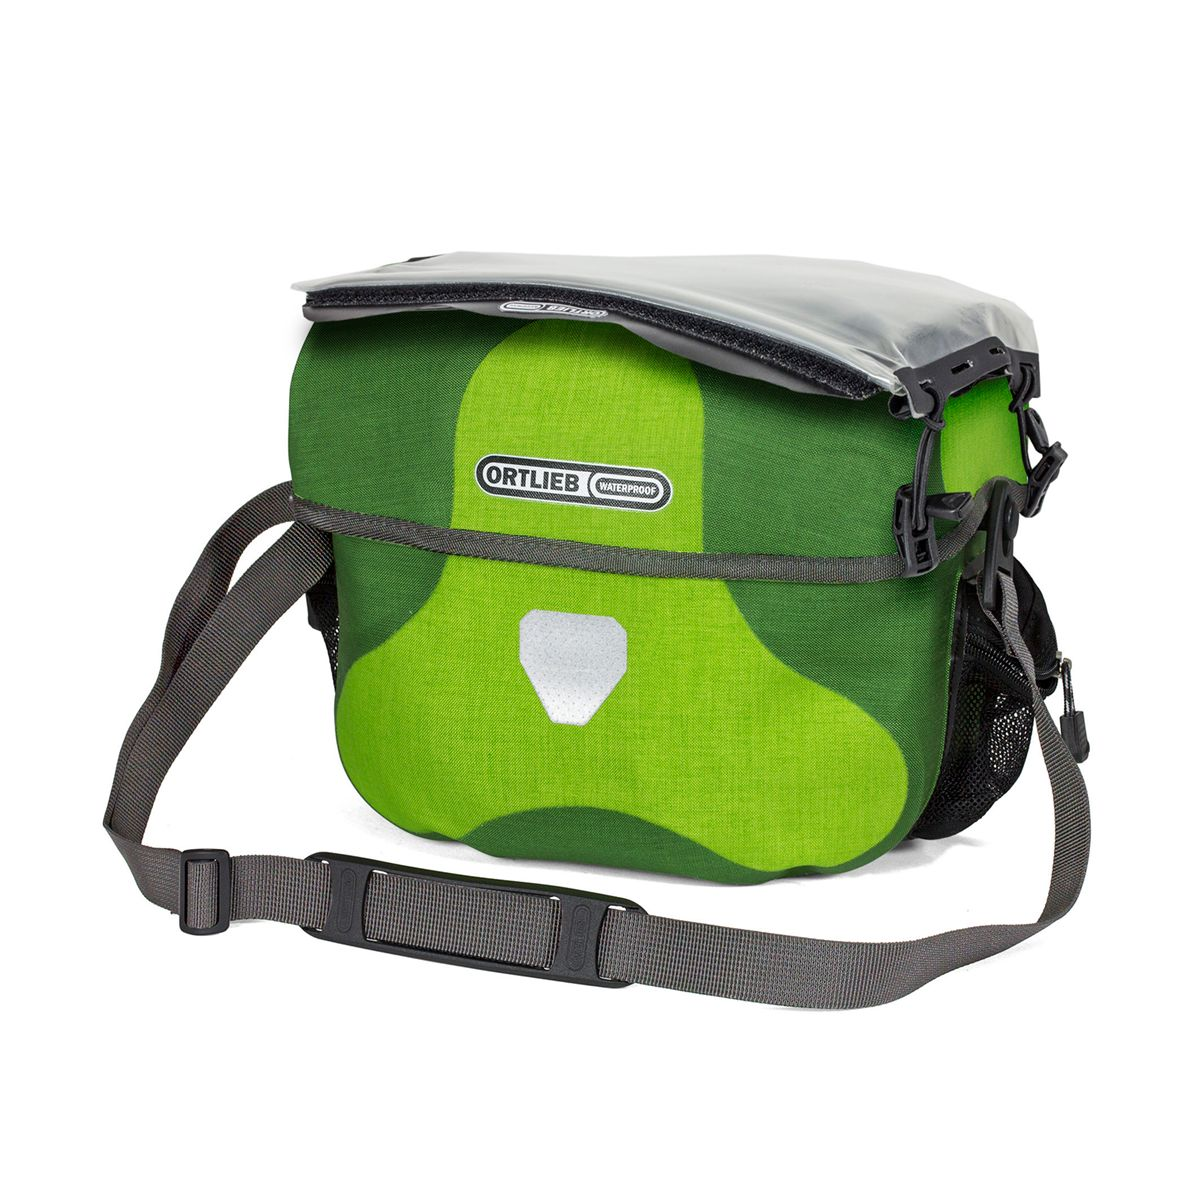 ORTLIEB ULTIMATE SIX PLUS 7 L Lenkertasche